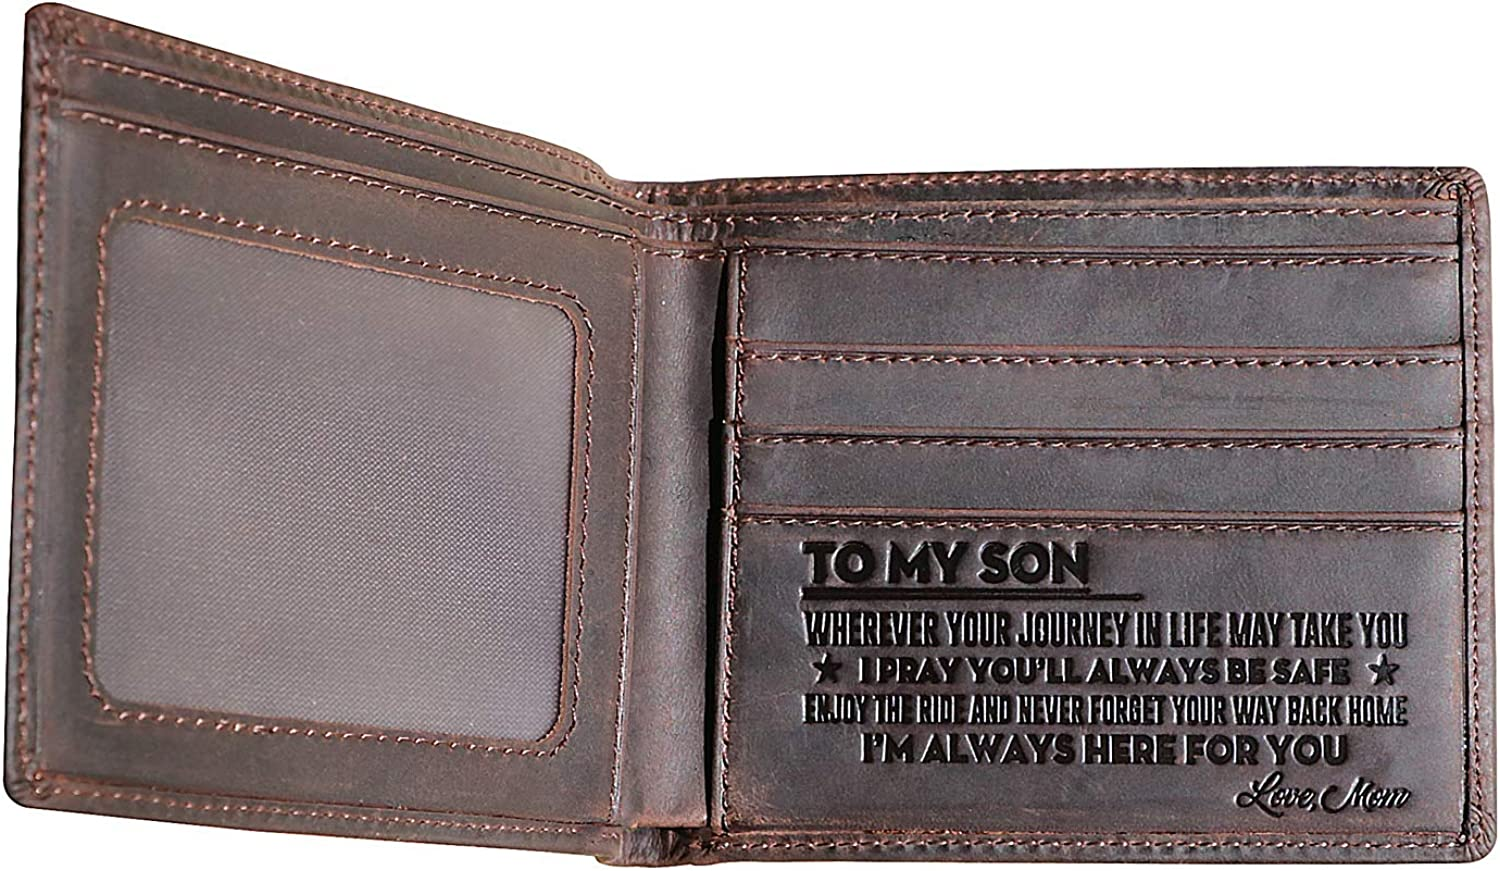 Engraved Bifold Wallet for Son-Sons Wallet from Mom,Mom to Son Dad to Son Wallets Men Wallet with Saying